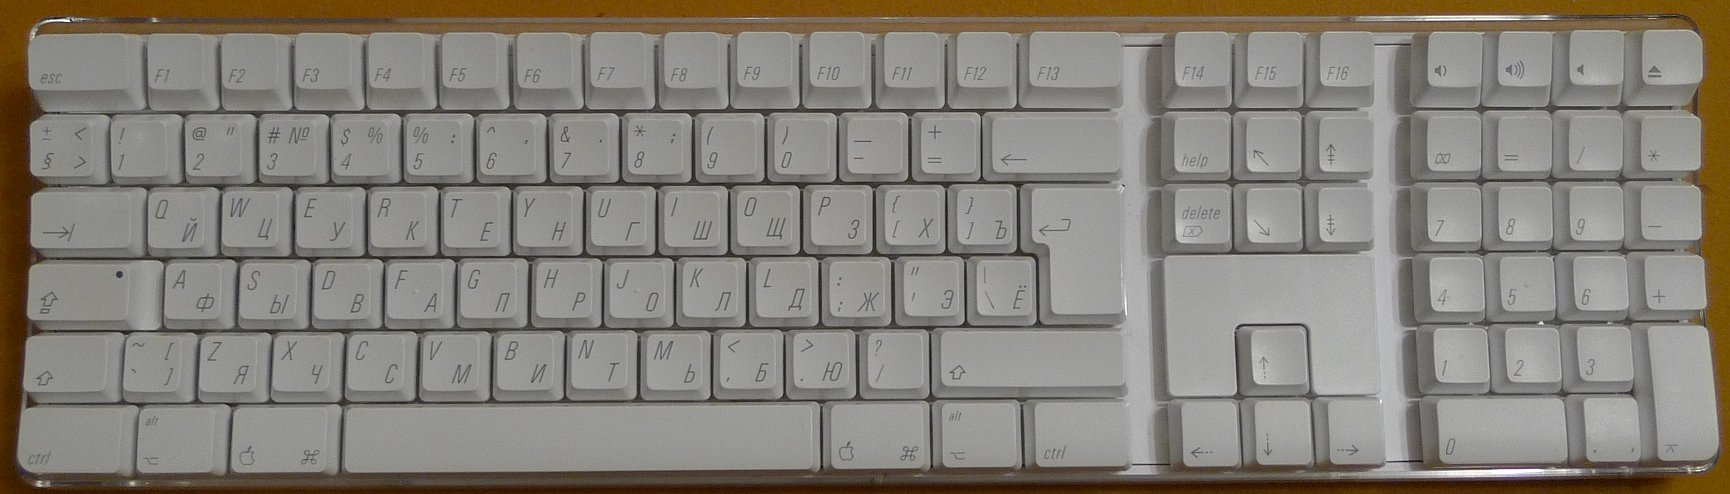 Keyboard Enterreturn Key Symbol